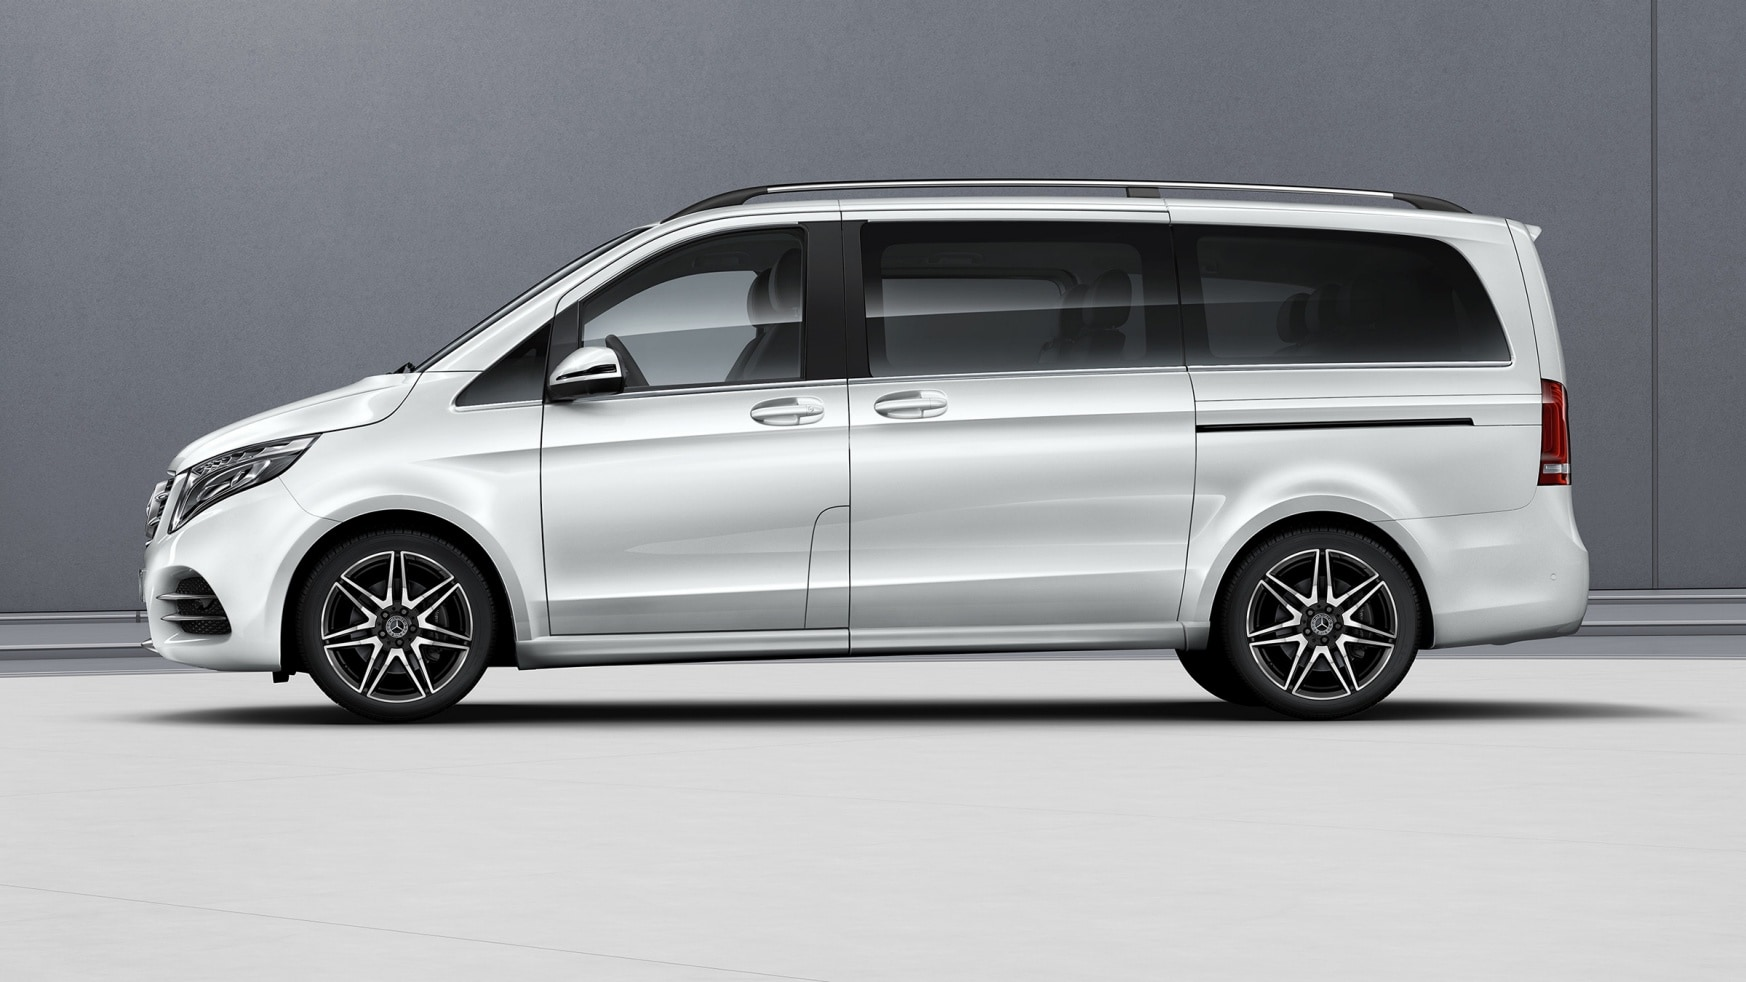 V-Class, Features, Equipment, AMG Line, Exterior, Impressive profile